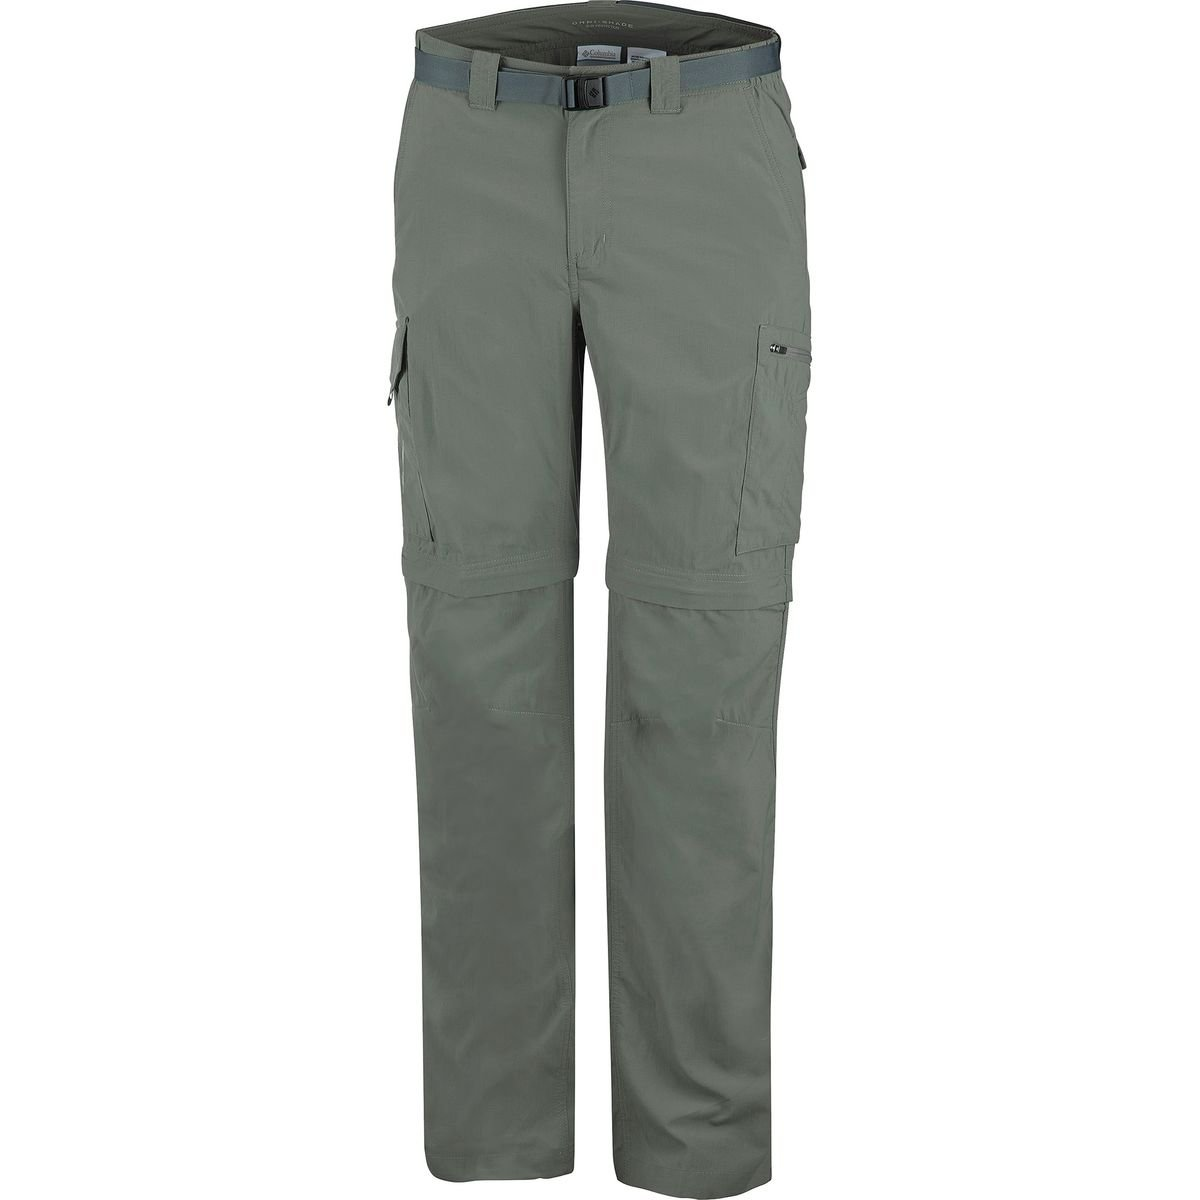 Cypress 44x30 Columbia Silver Ridge Congreenible Pant